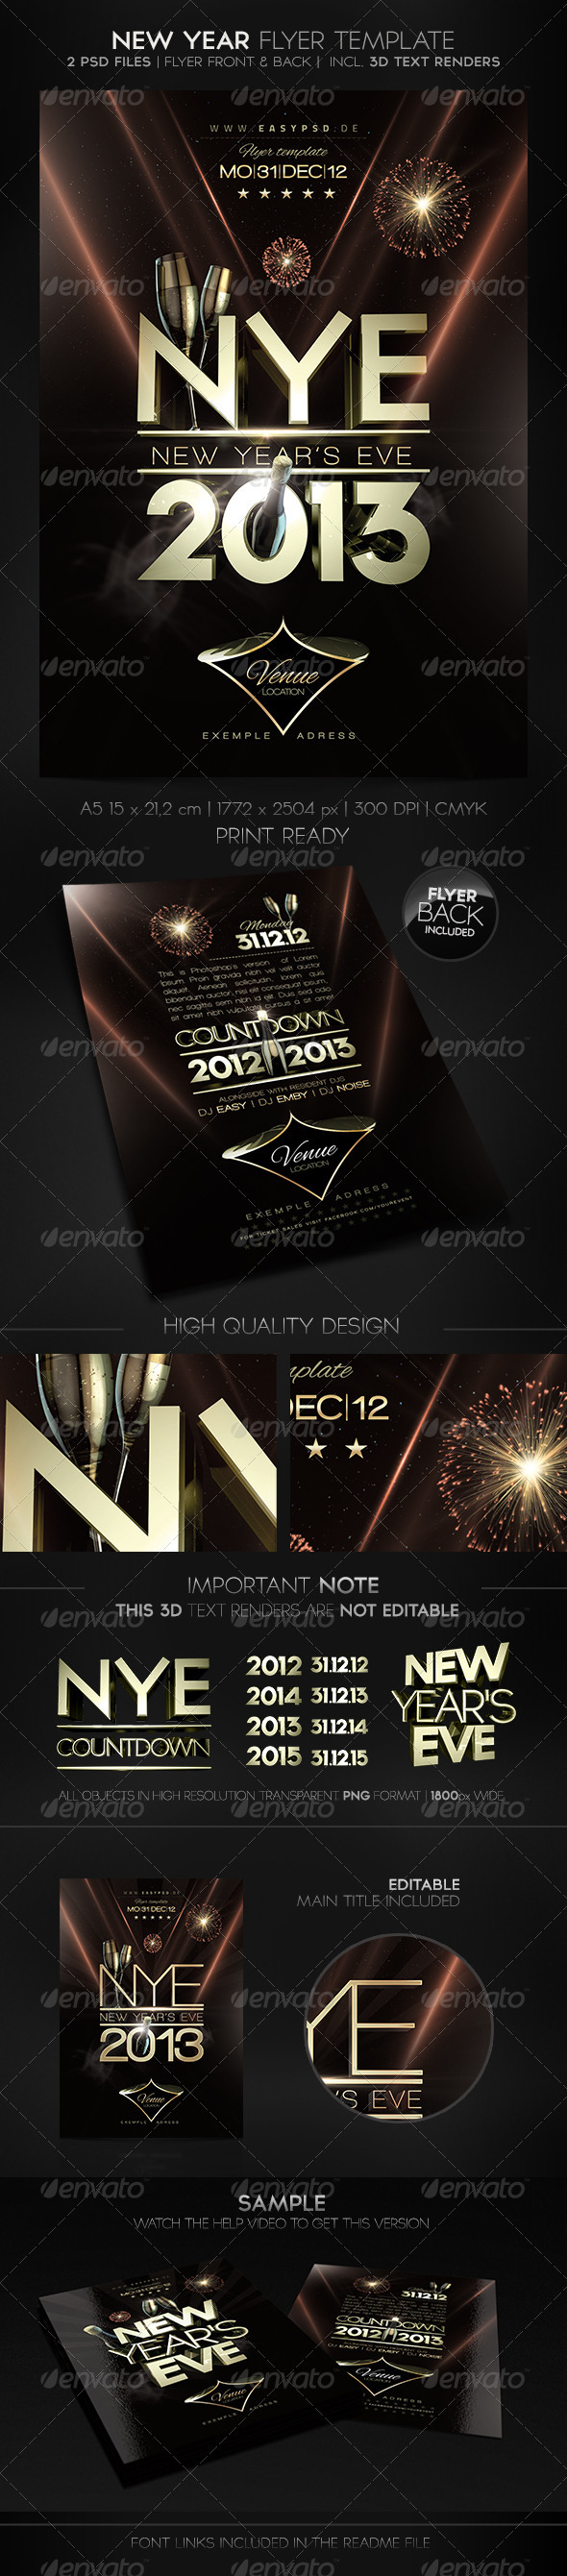 GraphicRiver New Year Flyer Template 3516843